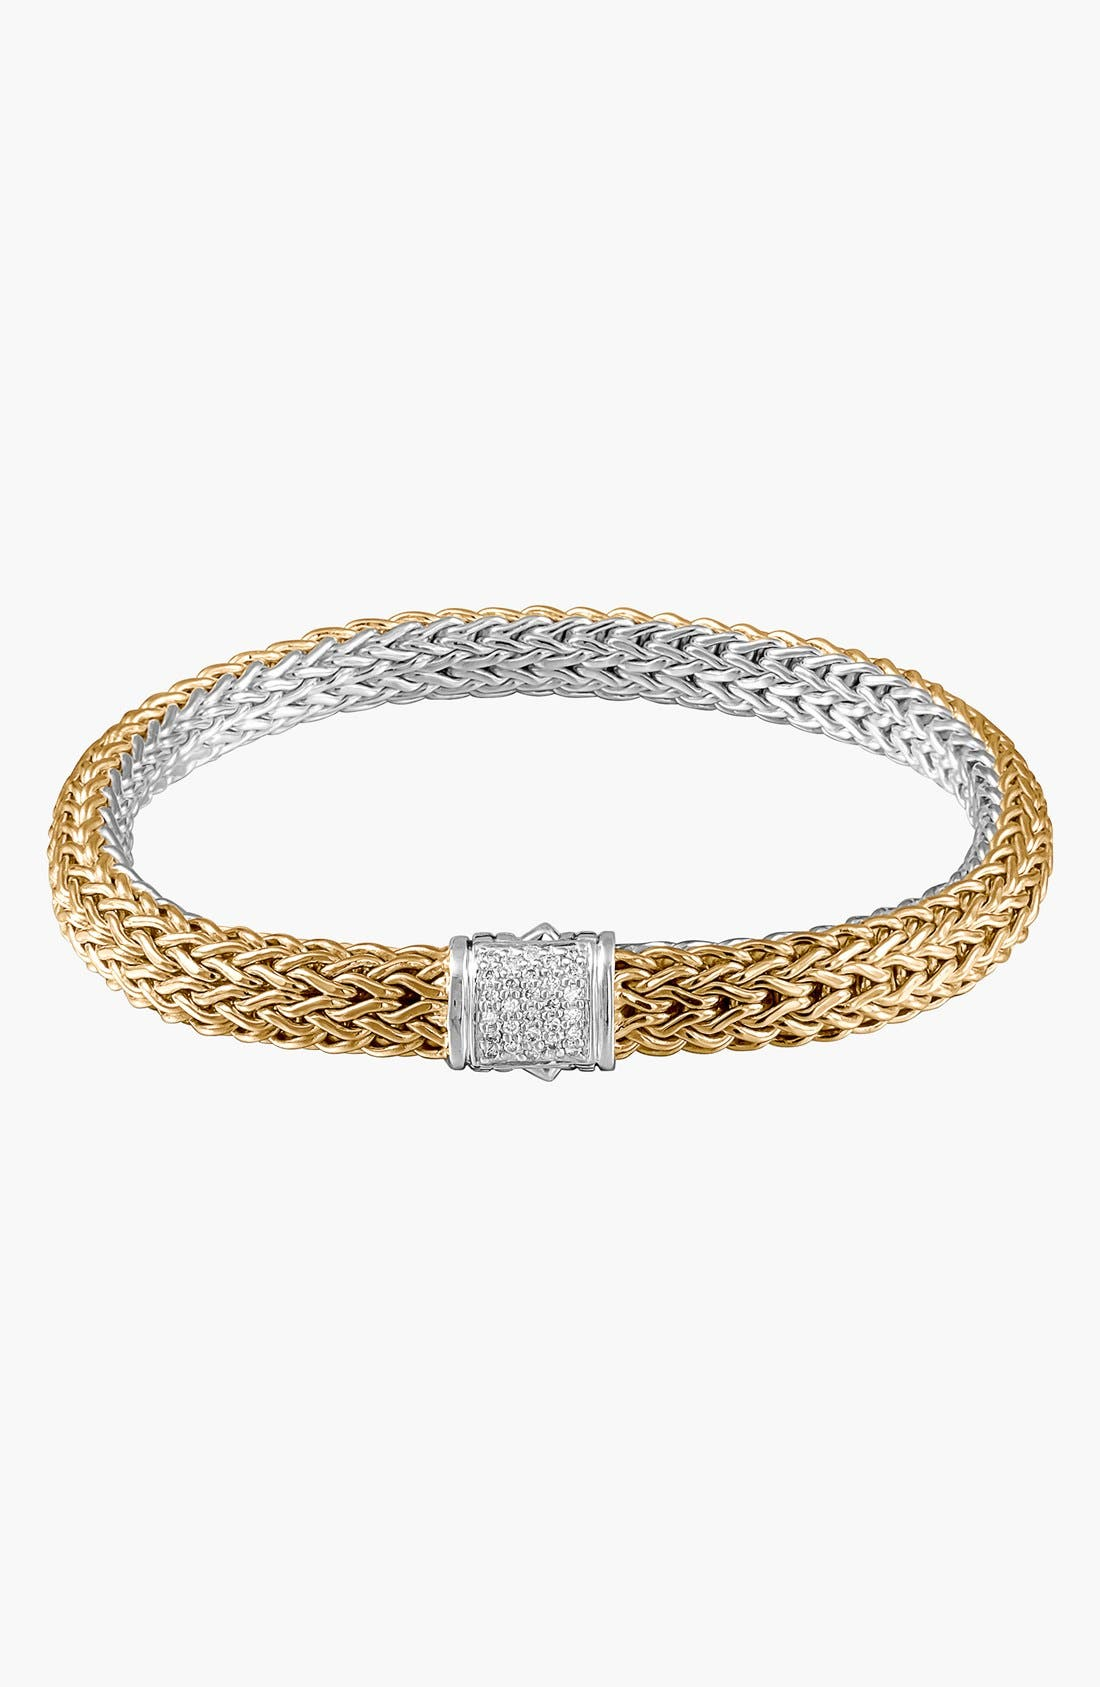 Main Image - John Hardy 'Classic Chain' Diamond Two-Tone Bracelet